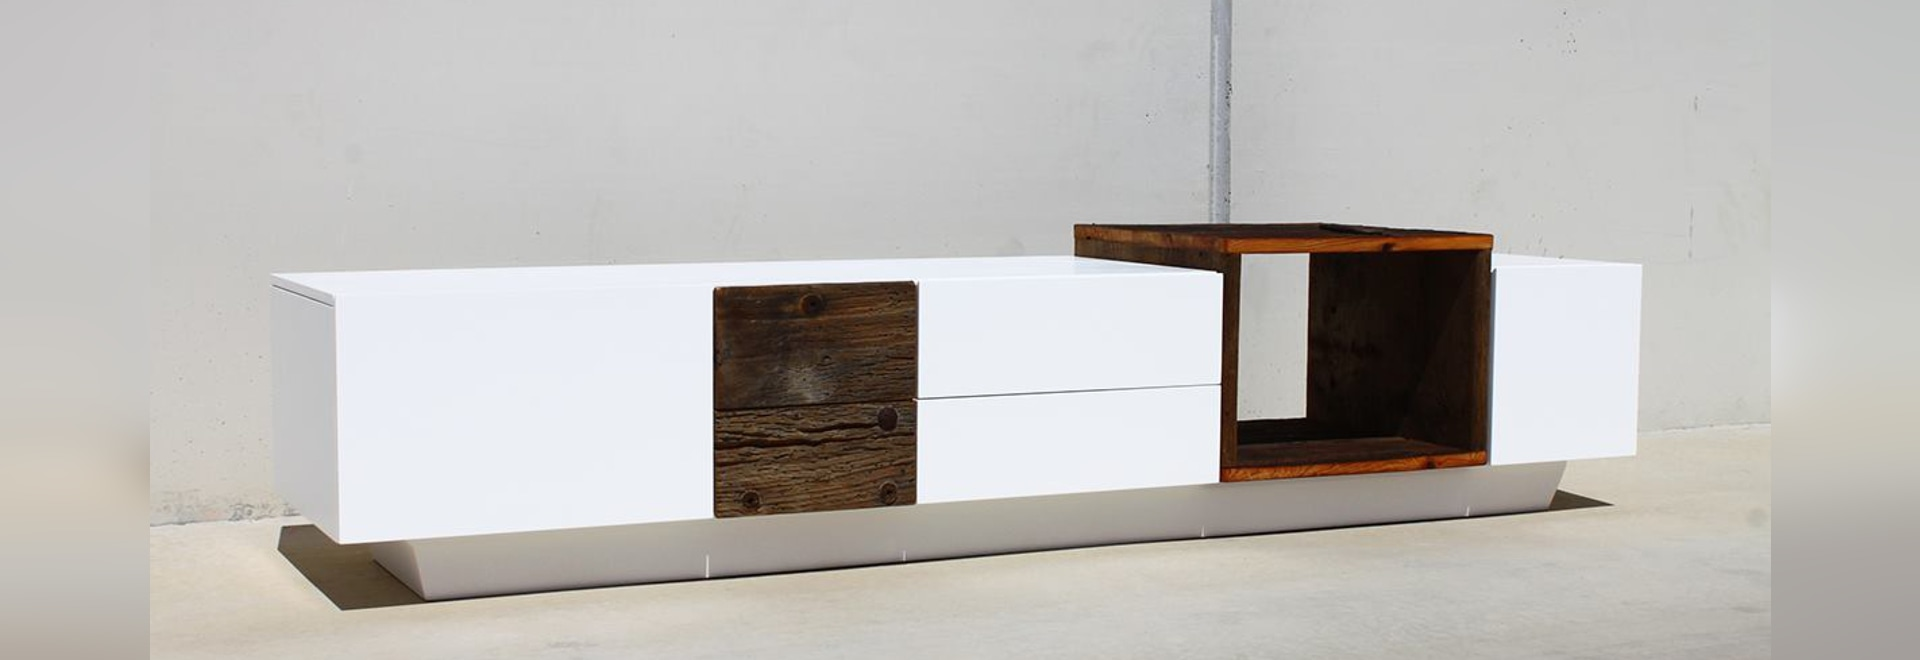 ST PERE TV sideboard  by Ici et Là